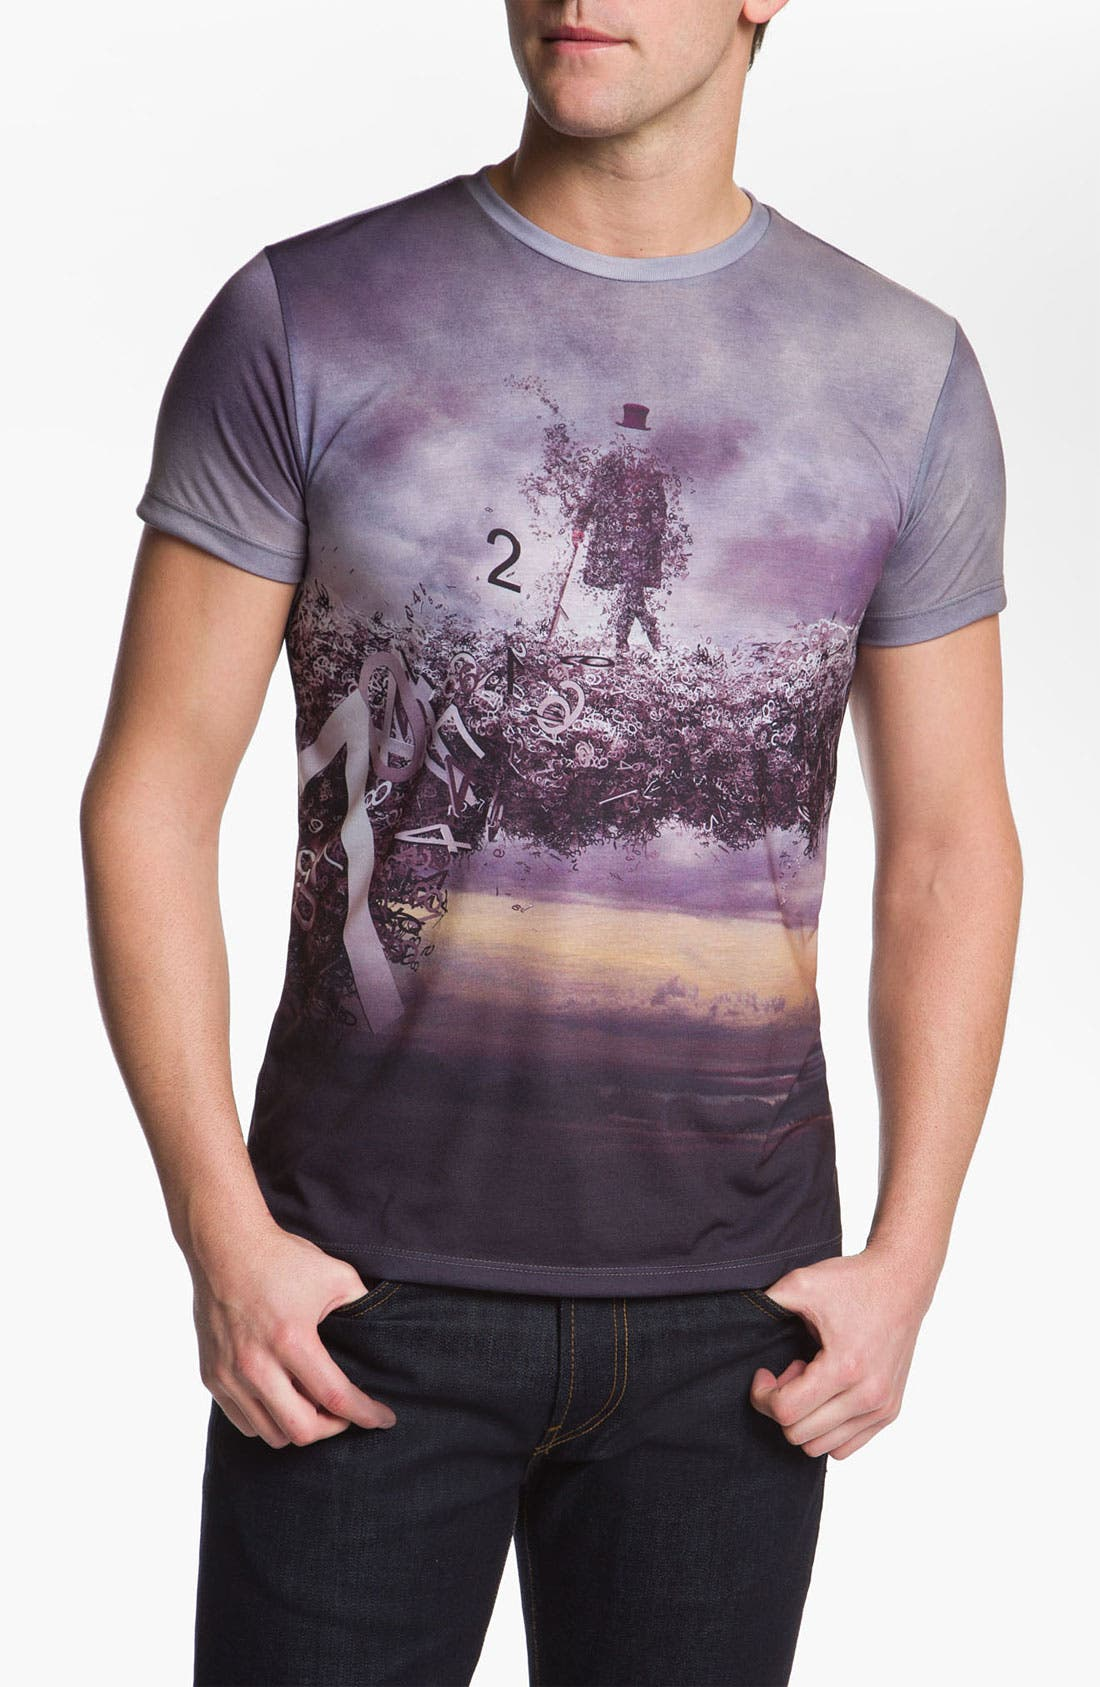 Main Image - Imaginary Foundation 'Numeral' Allover Graphic T-Shirt